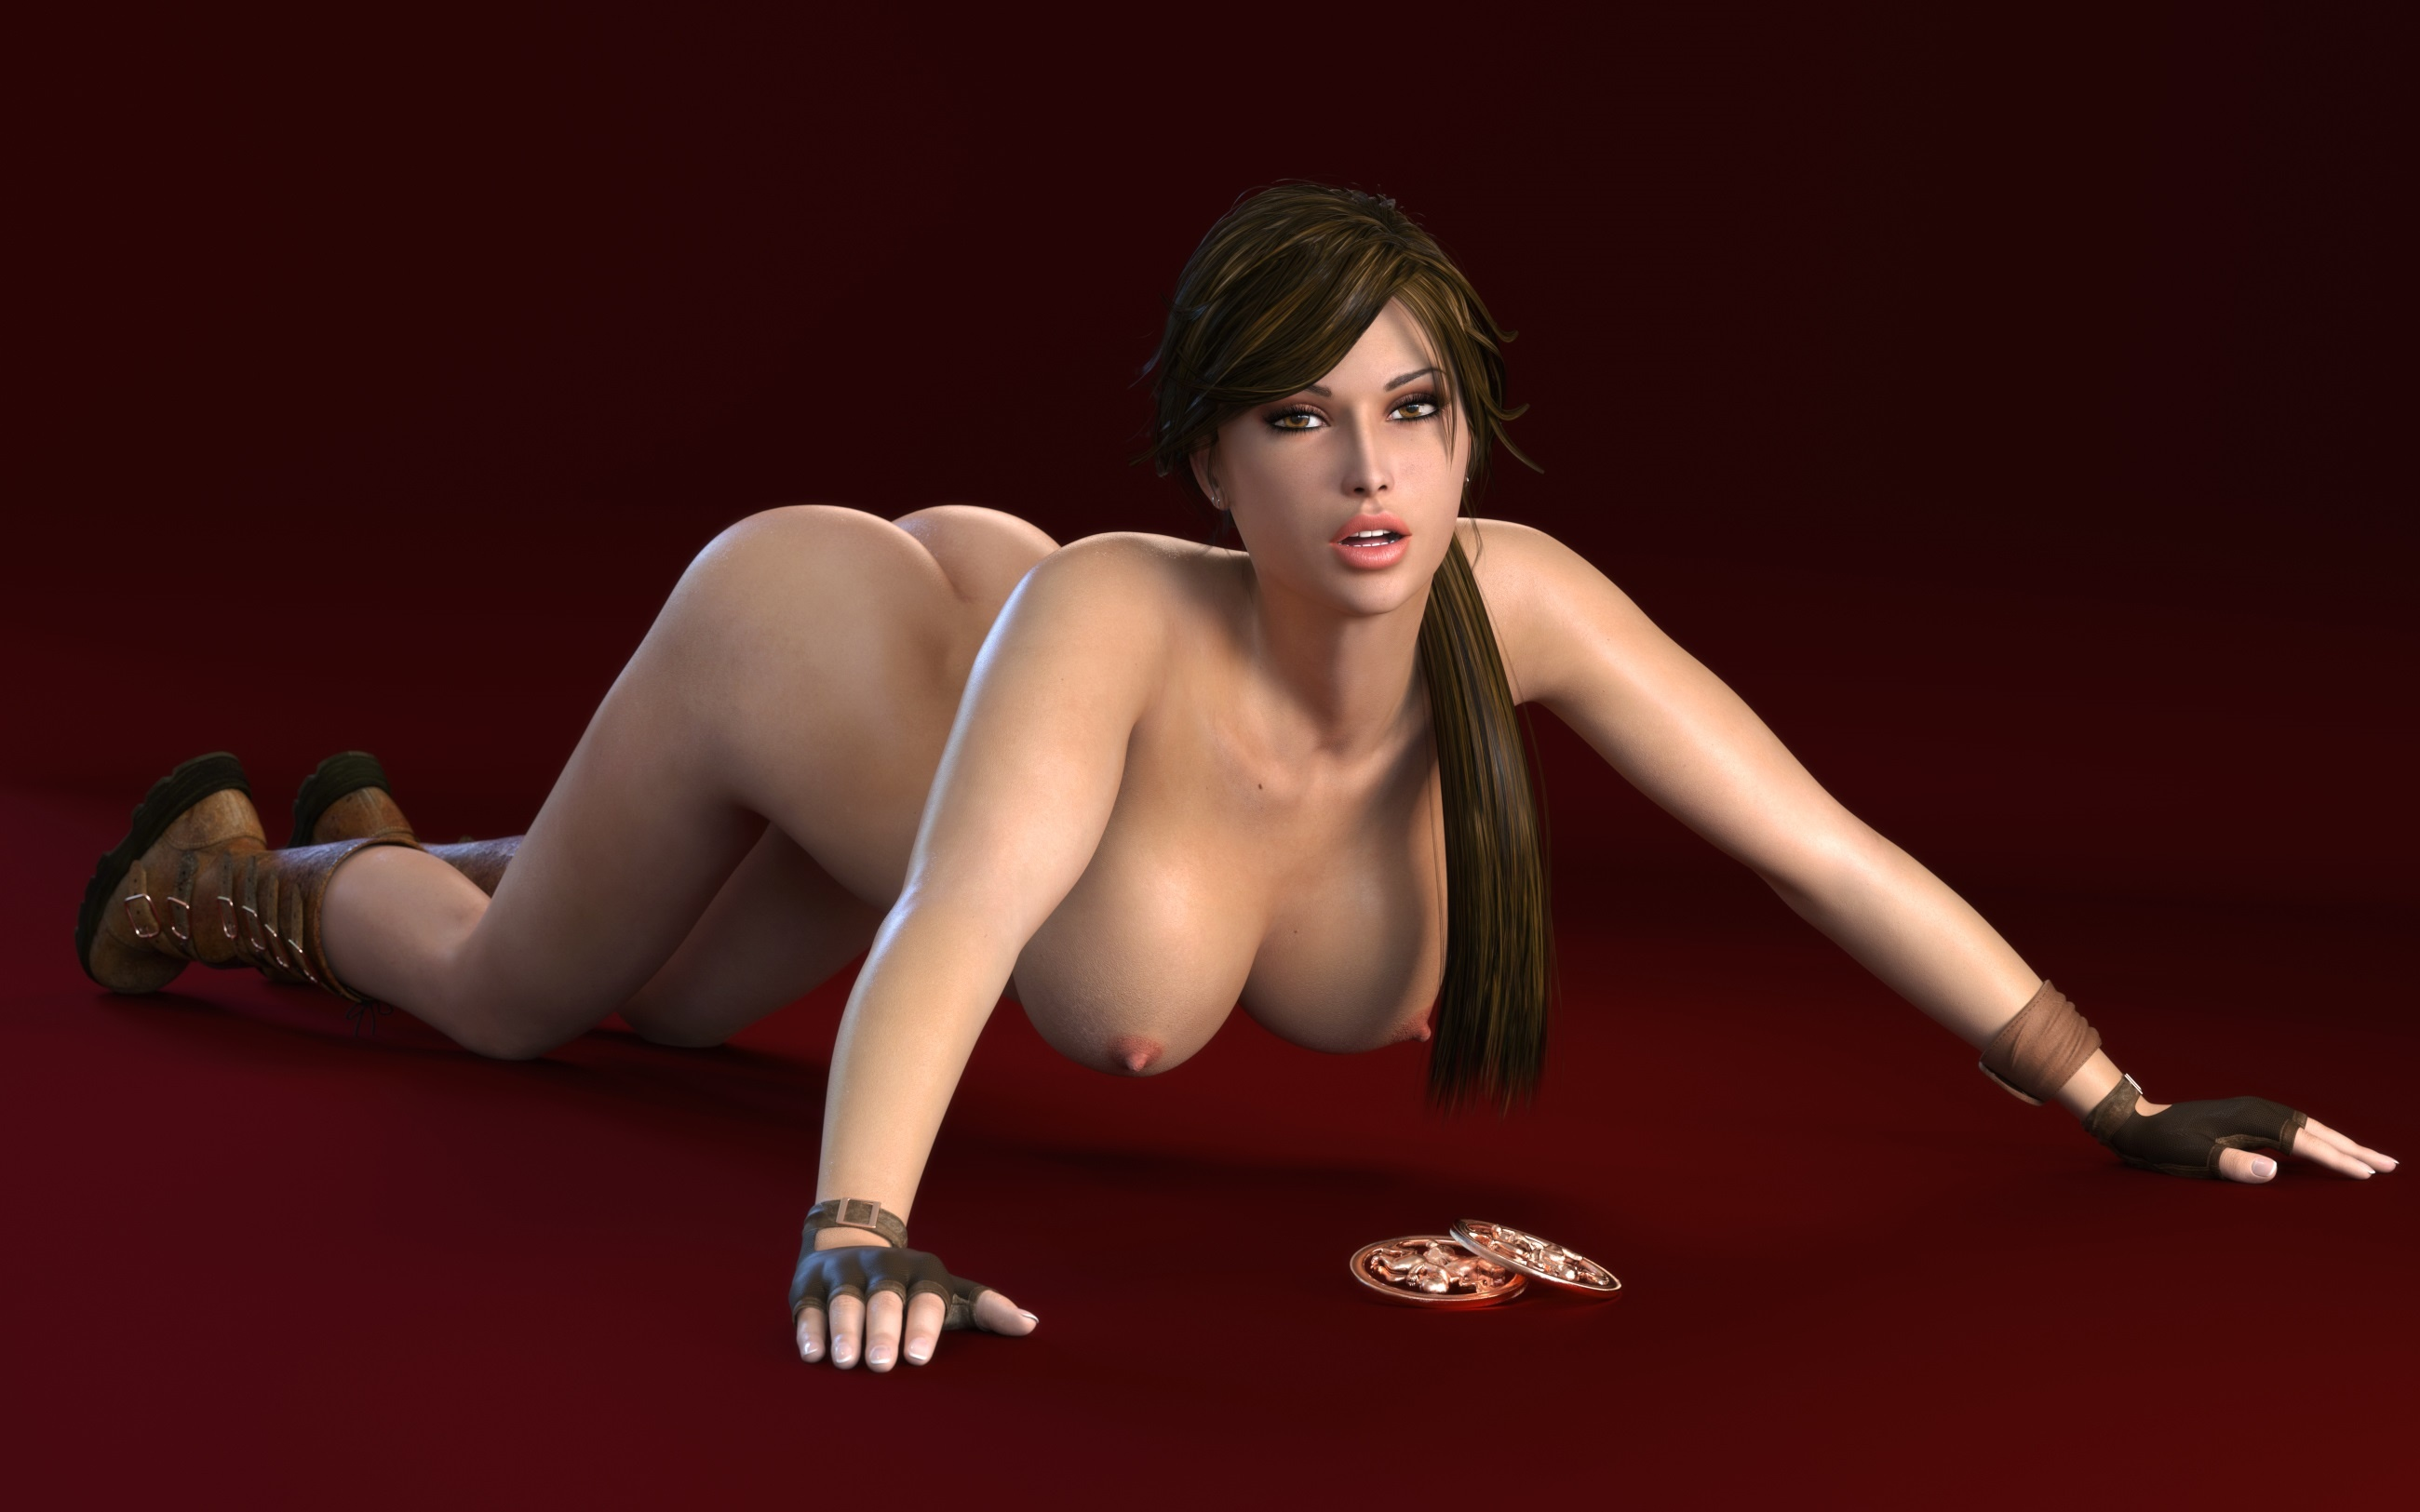 wallpaper lara croft, tomb raider, art, 3d, sexy, nude, boobs, tits